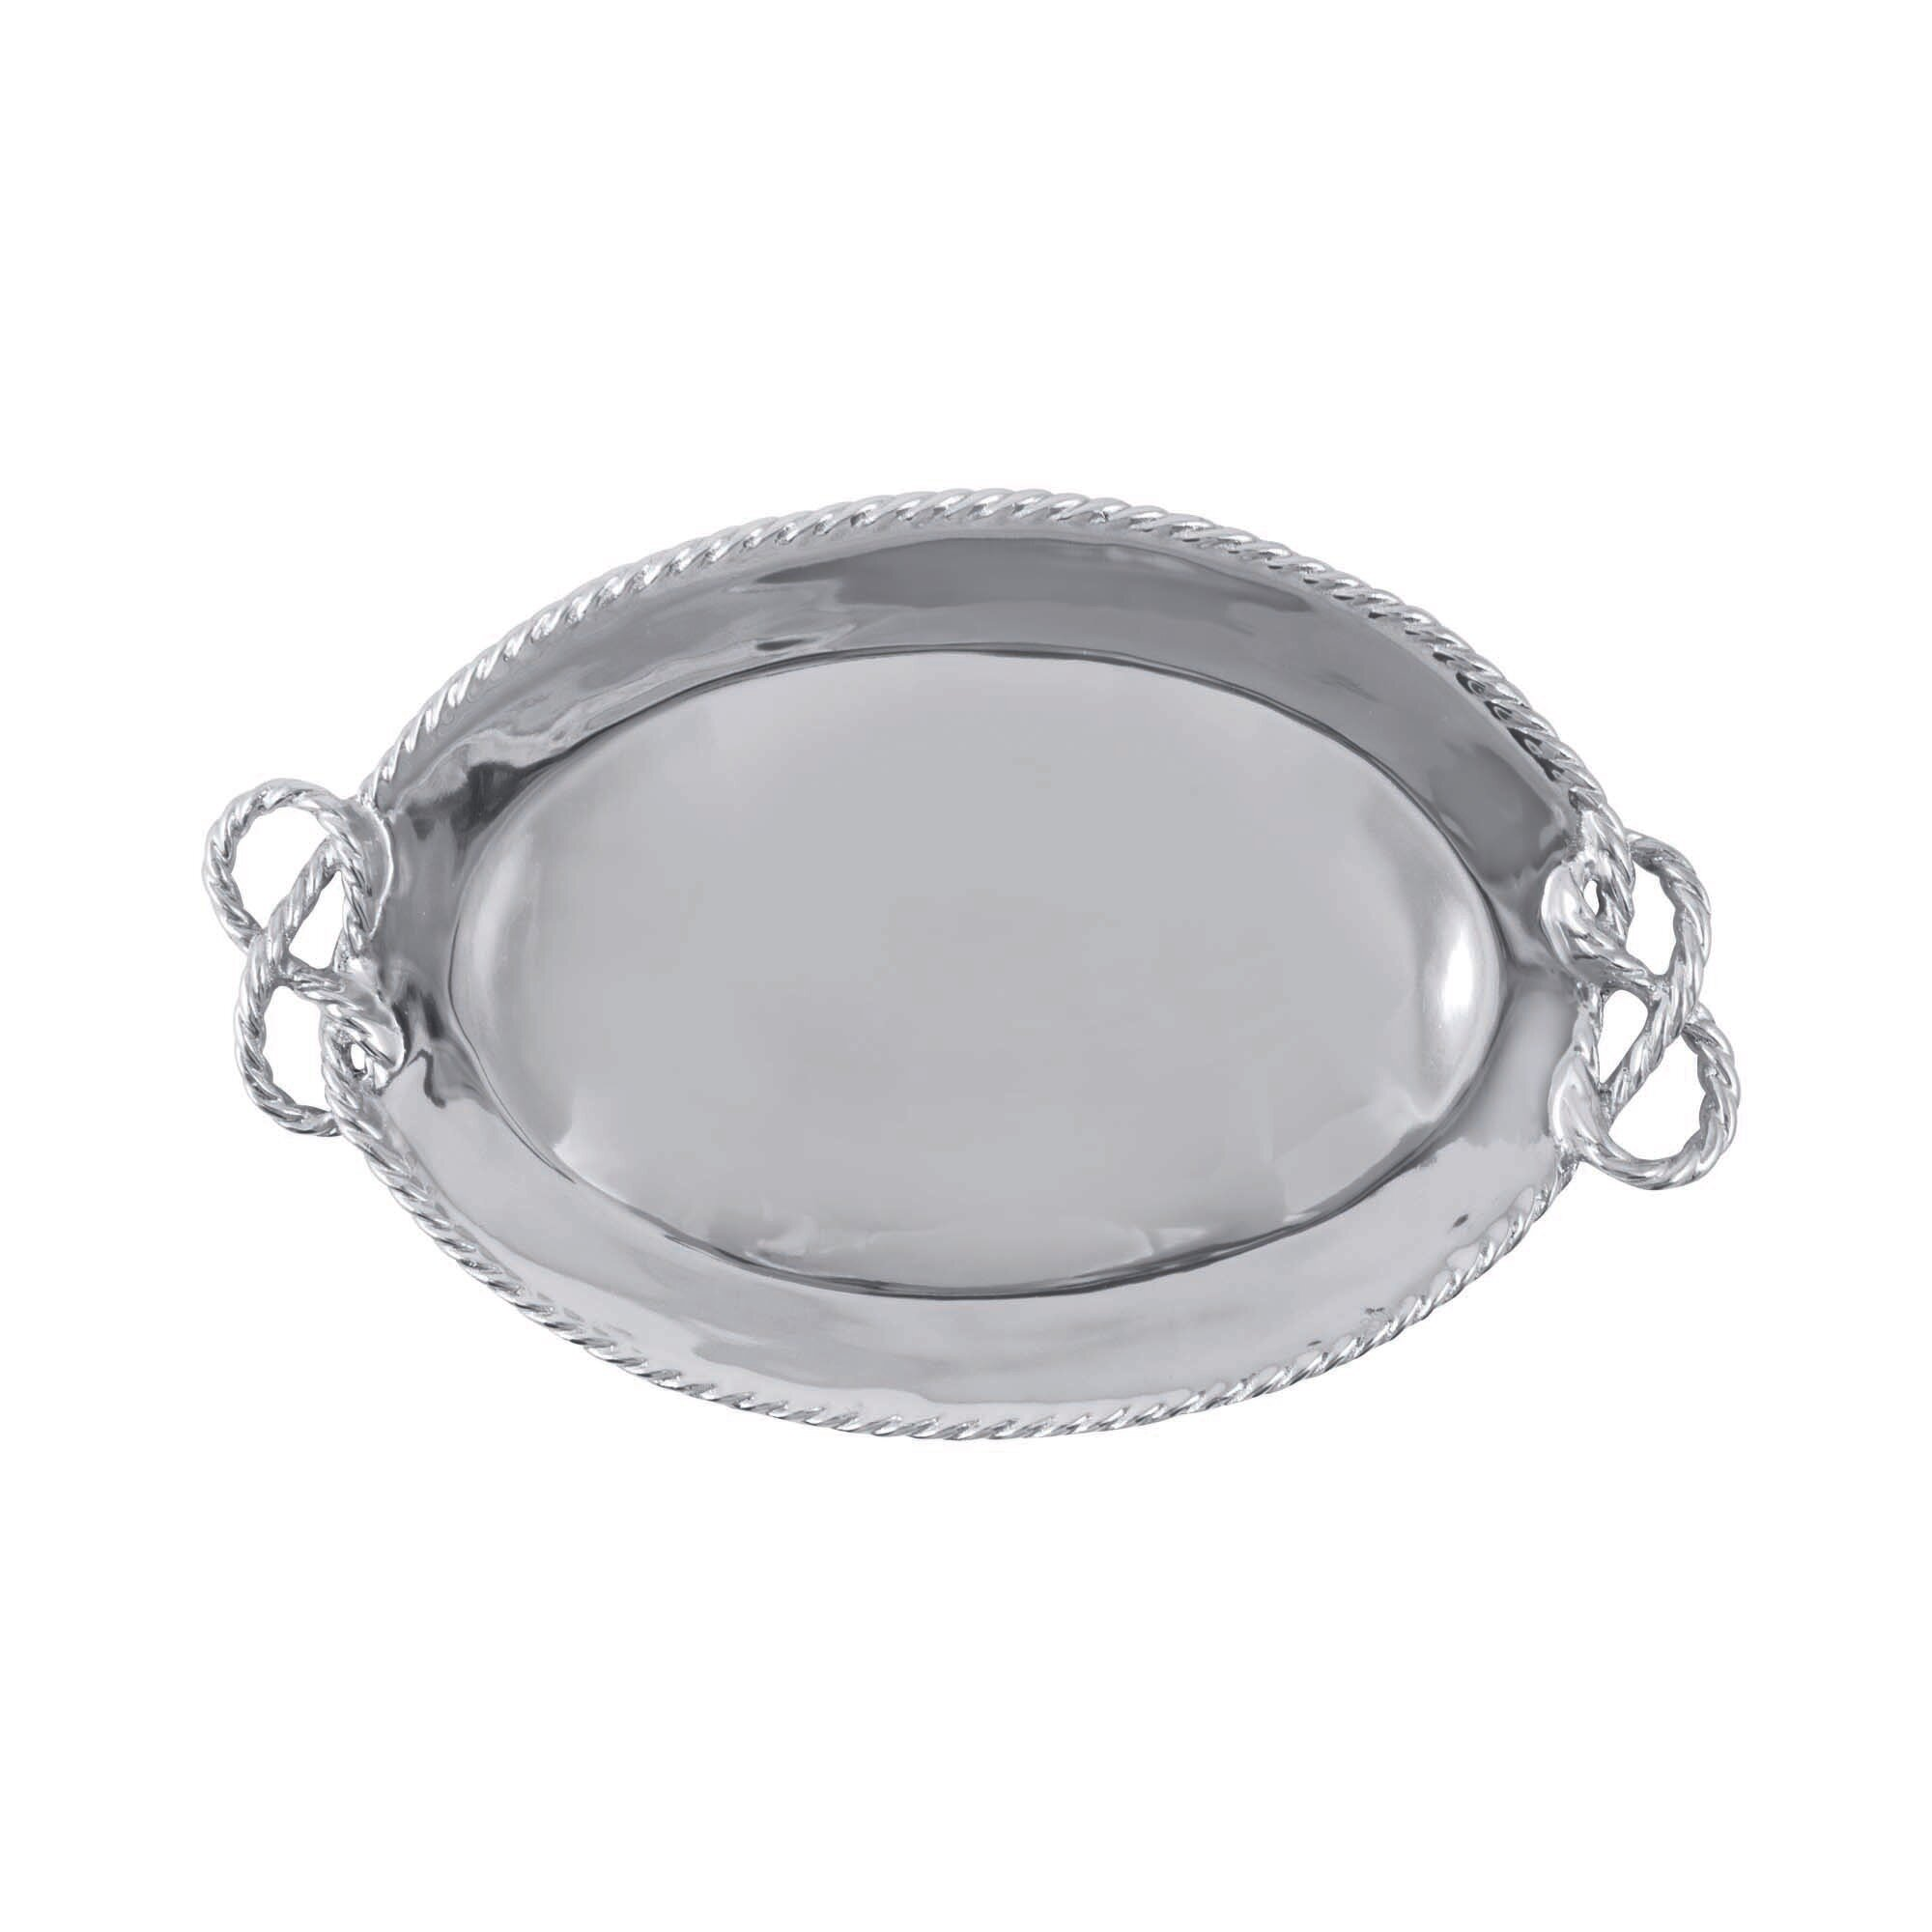 Mariposa High Seas Rope Oval Serving Tray Perigold